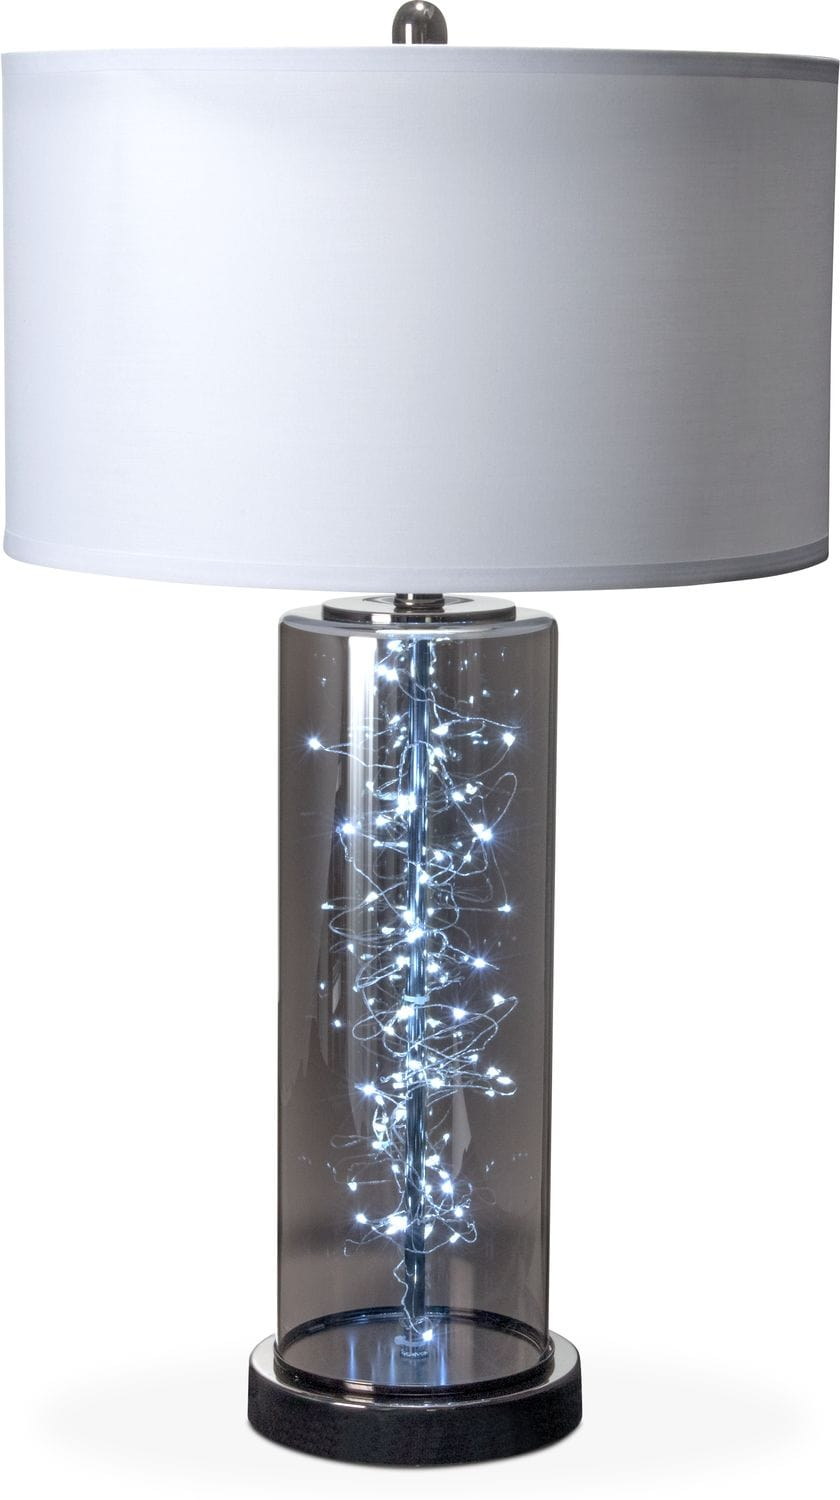 Accent Lighting | Floor \u0026 Table Lamps | Value City Furniture and ...